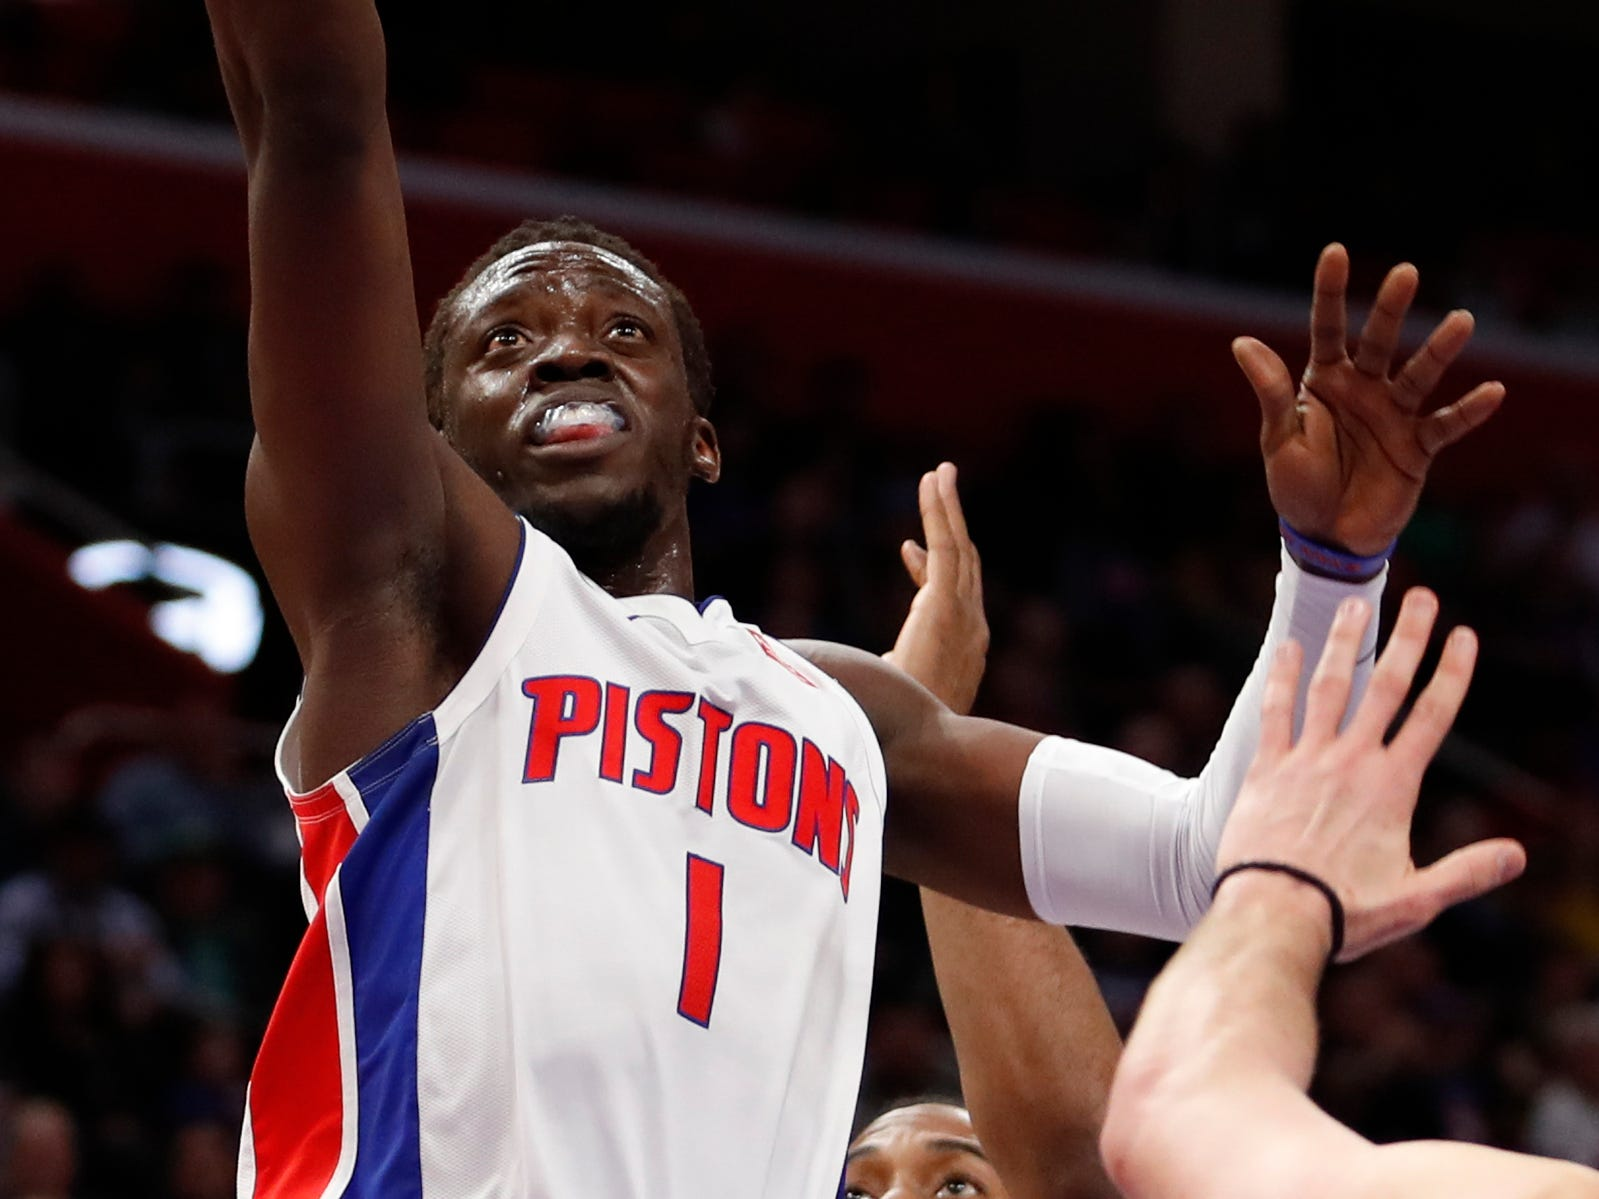 Detroit Pistons guard Reggie Jackson shoots against the Toronto Raptors in the first quarter at Little Caesars Arena, March 17, 2019, in Detroit.